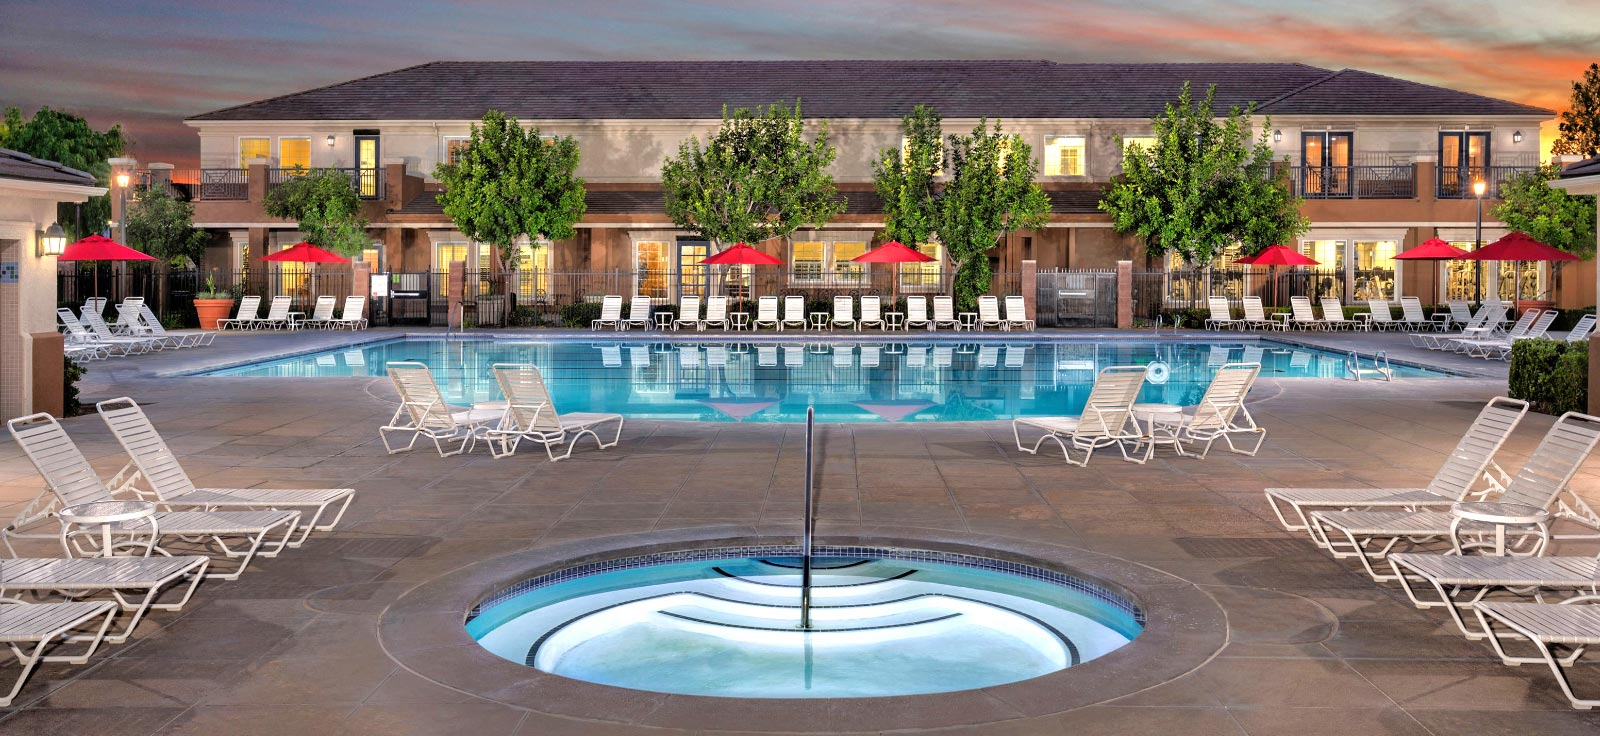 The Pool at The Parkhouse at The Preserve at Chino